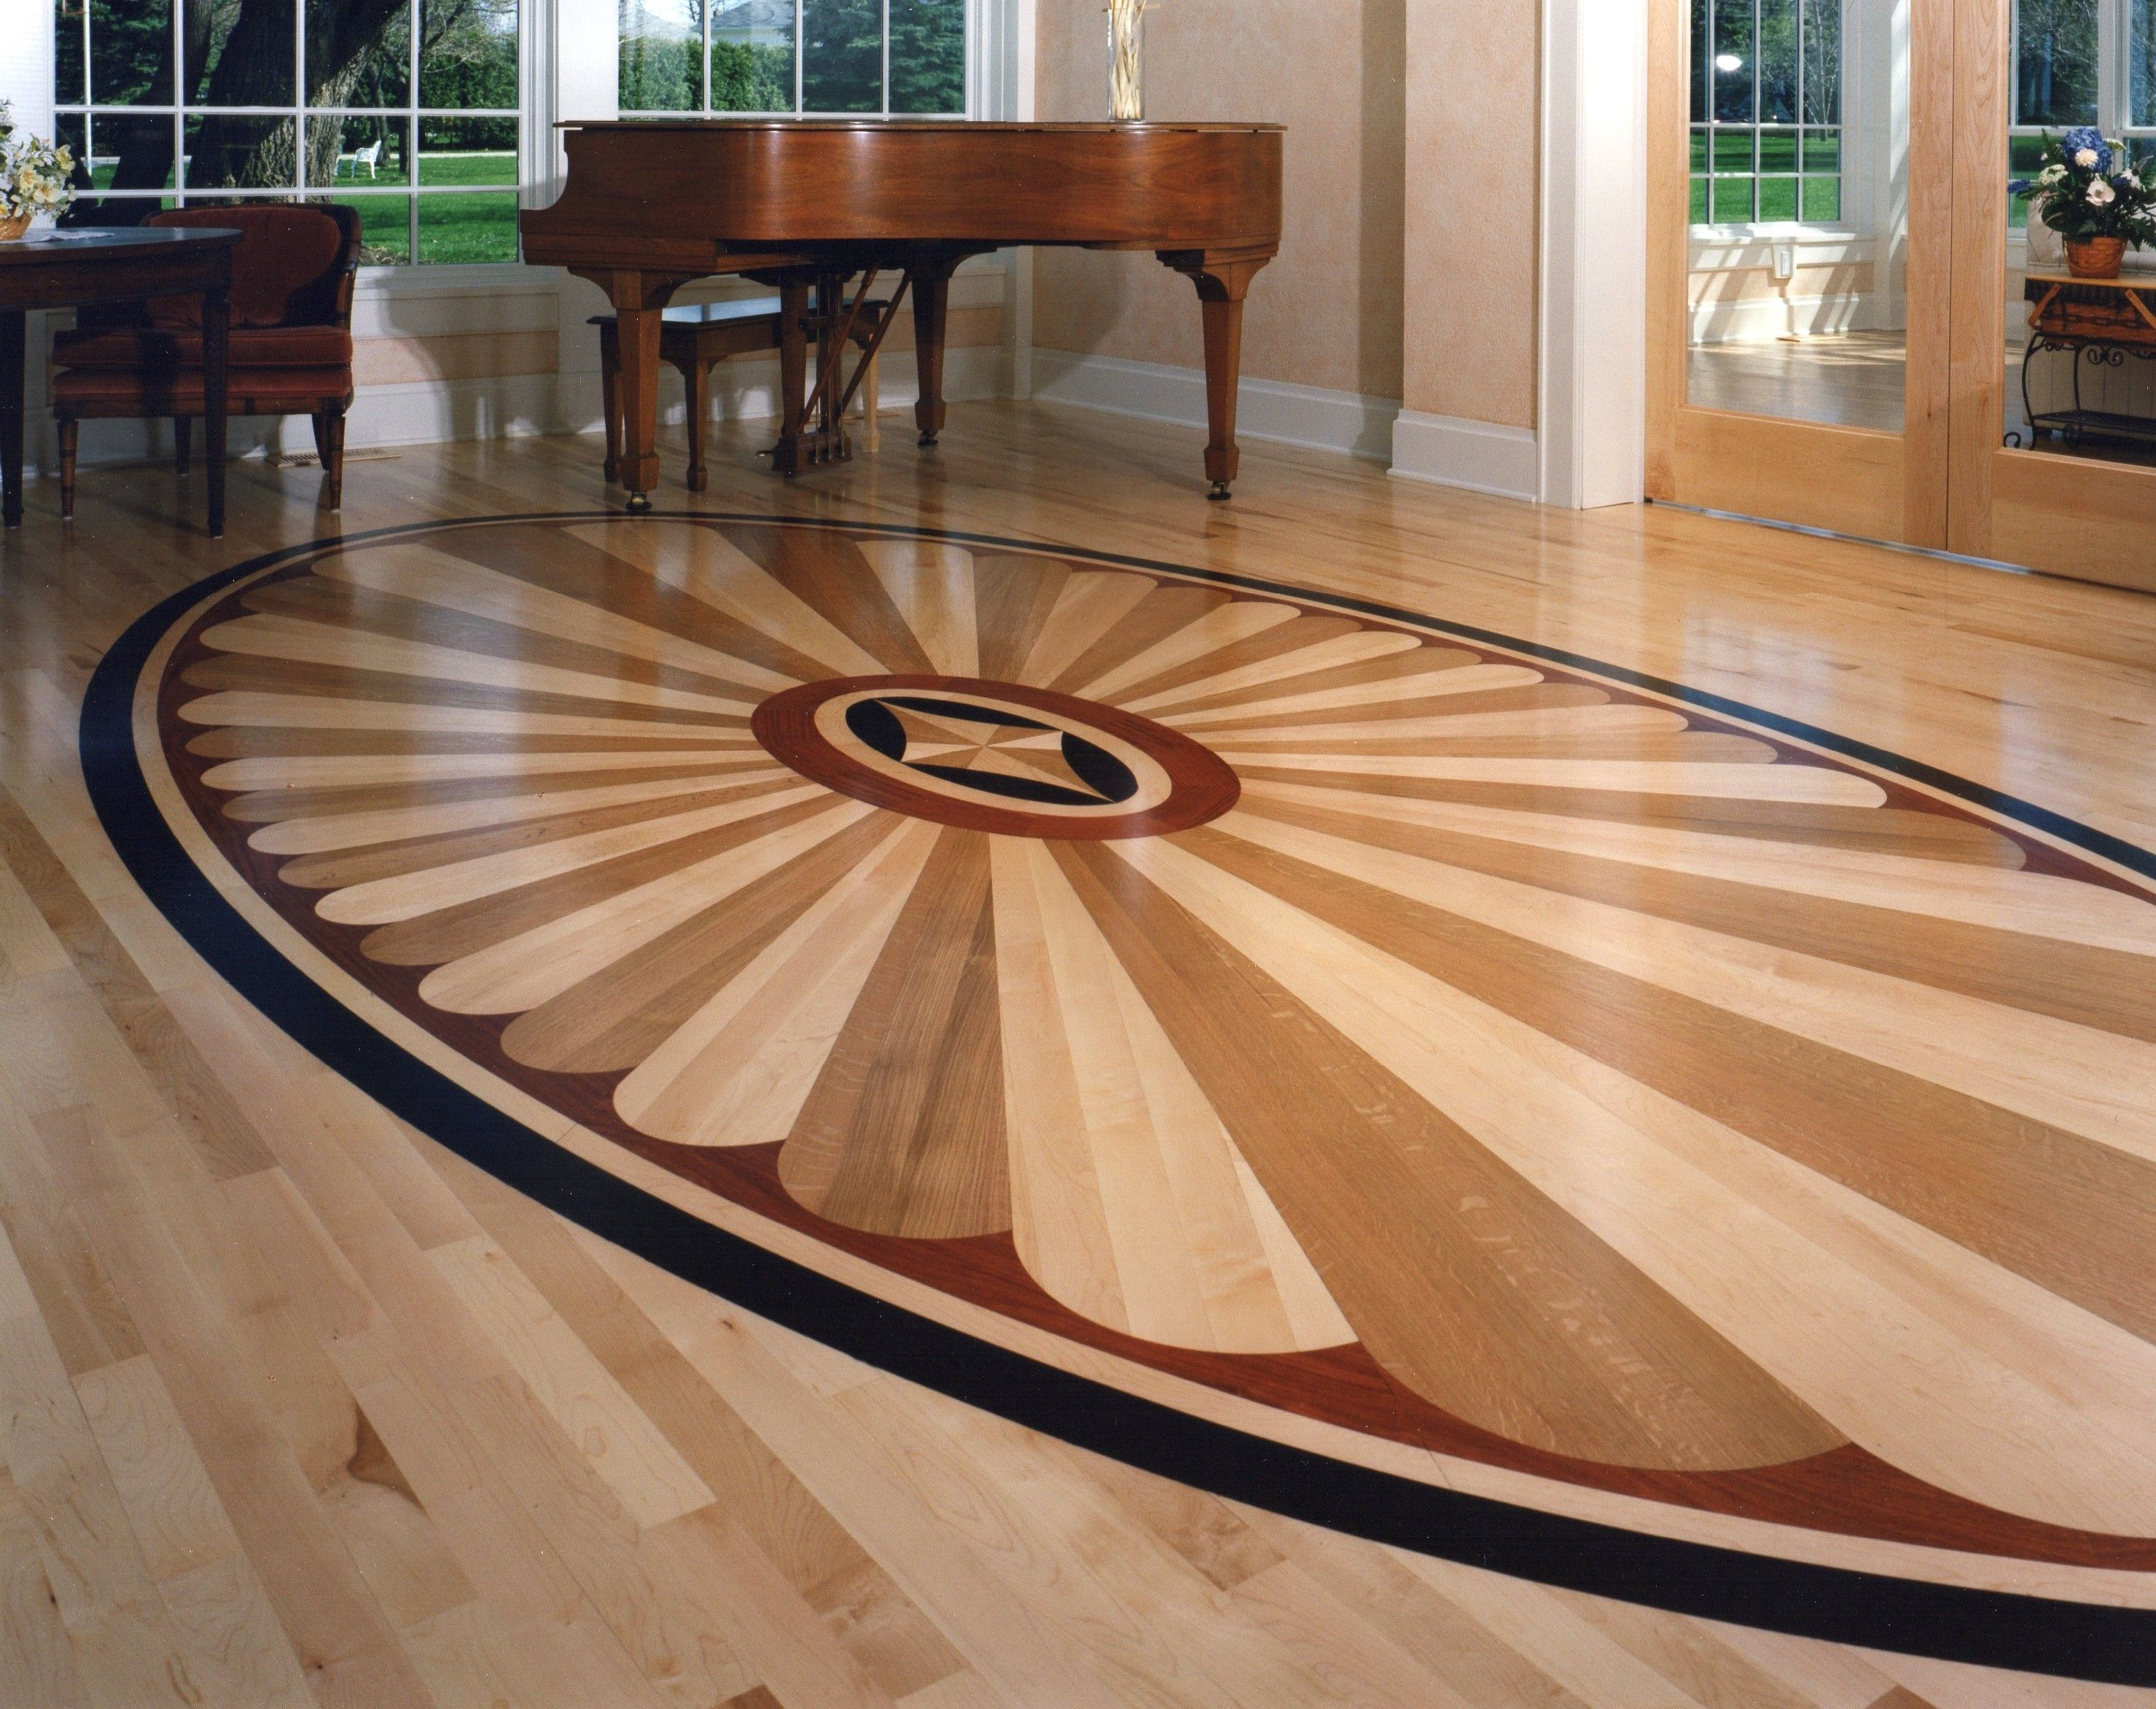 Rosetta Wood Medallion 2003 Floor Medallion By Oshkosh Designs Wood Floor Pattern Wood Floor Design Floor Design